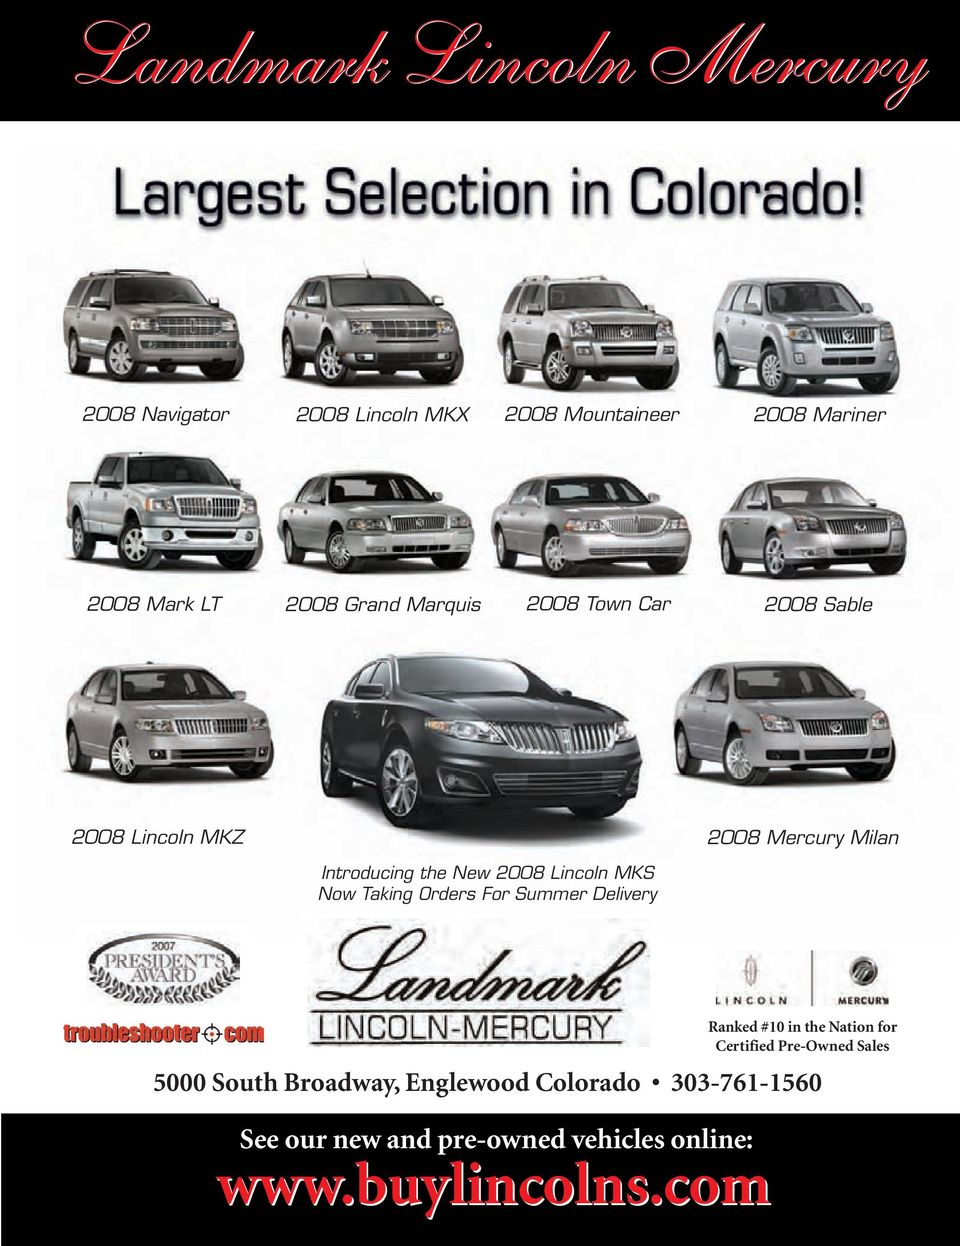 Lincoln MKS Now Taking Orders For Summer Delivery 5000 South Broadway, Englewood Colorado 303-761-1560 See